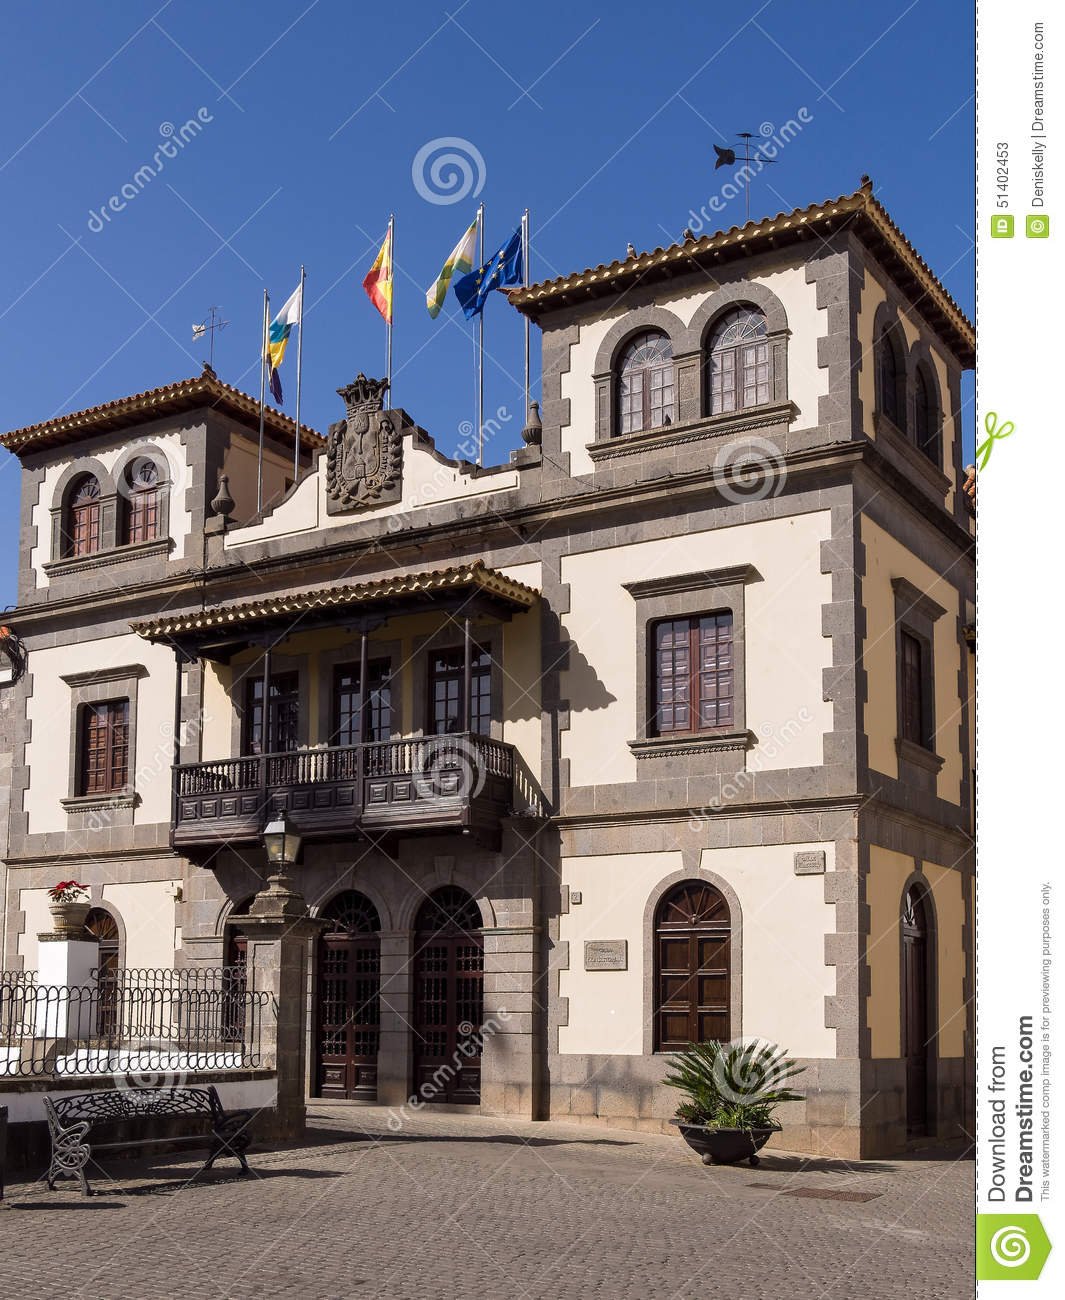 Historic Town Hall in Gran Canaria, Spain